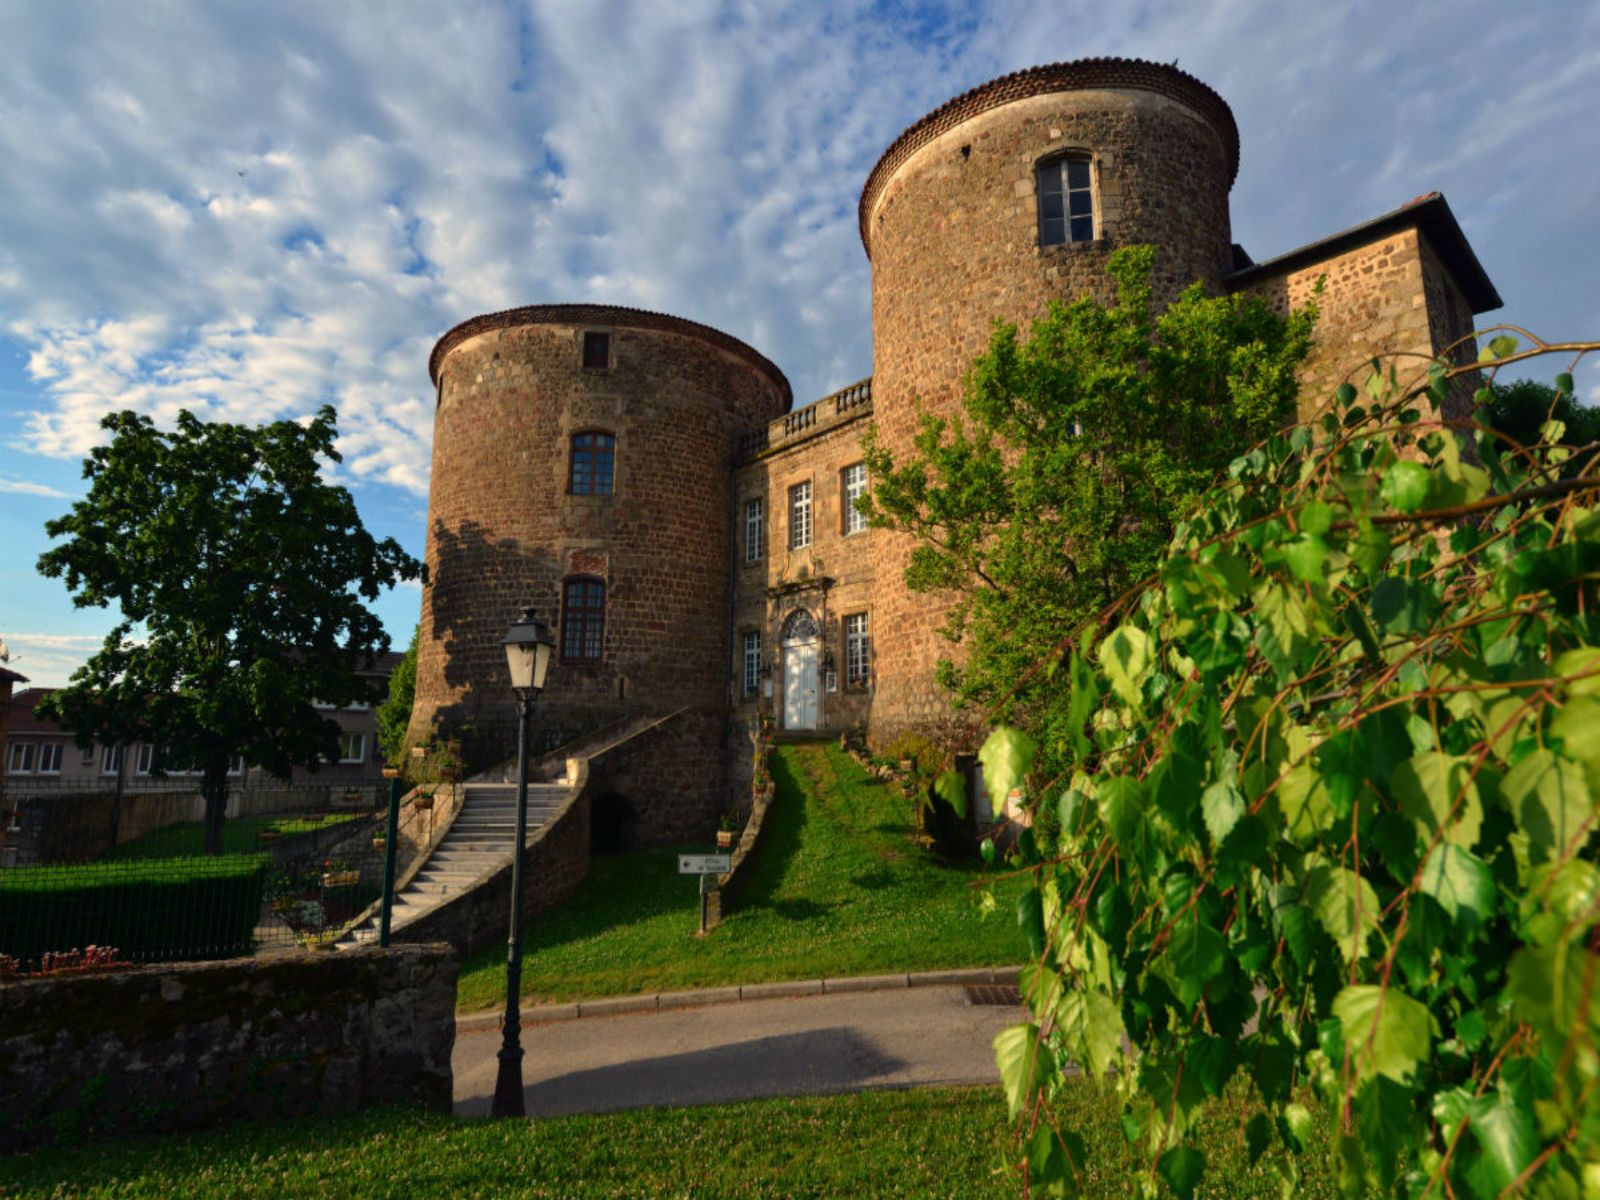 EVE-chateaudeseveques_monistrol_jcparayre